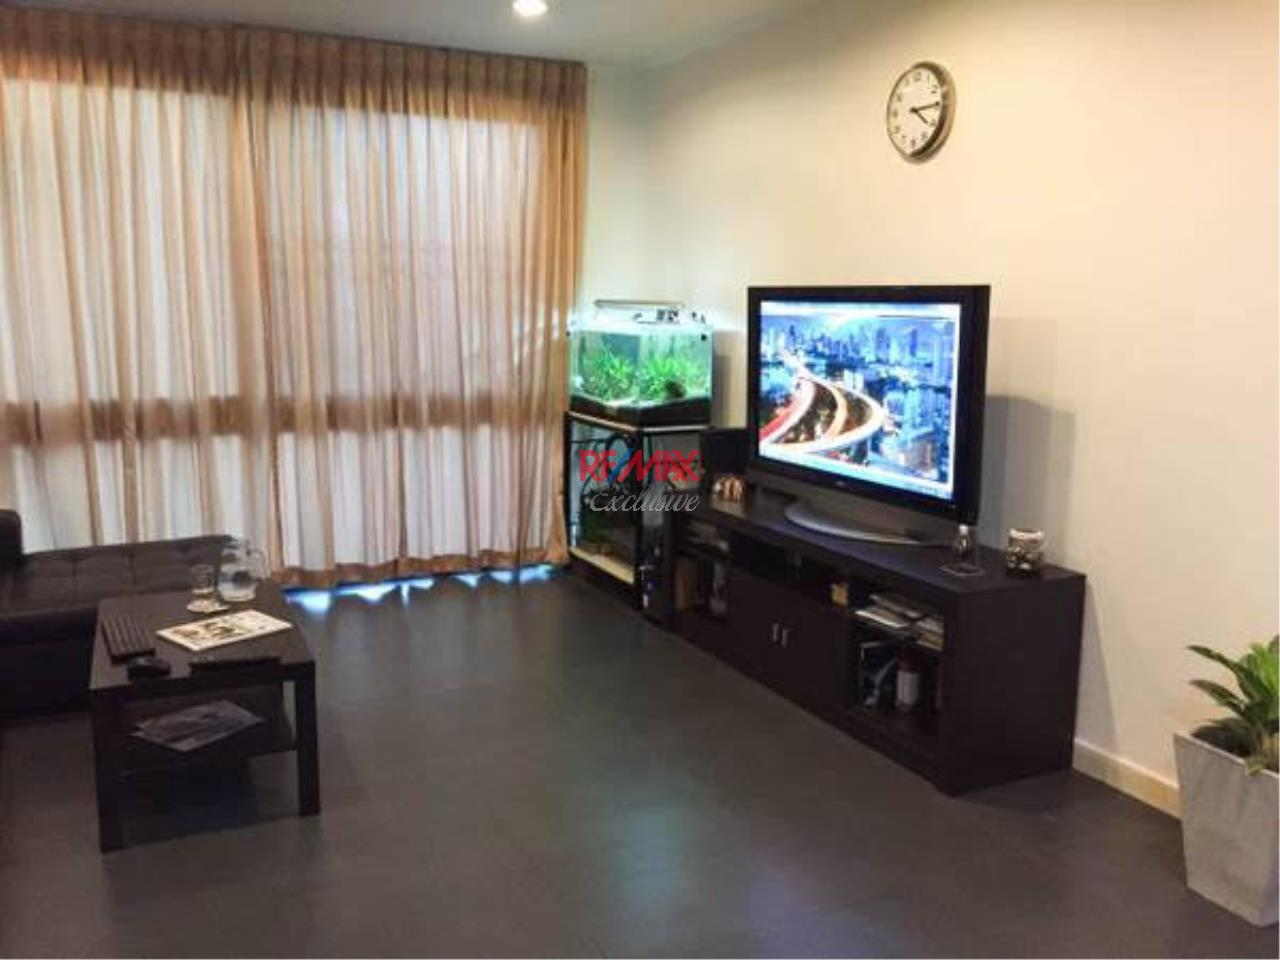 RE/MAX Exclusive Agency's Baan Saran 1 Bedroom Big Size for sale Good Price 4200000 THB 4